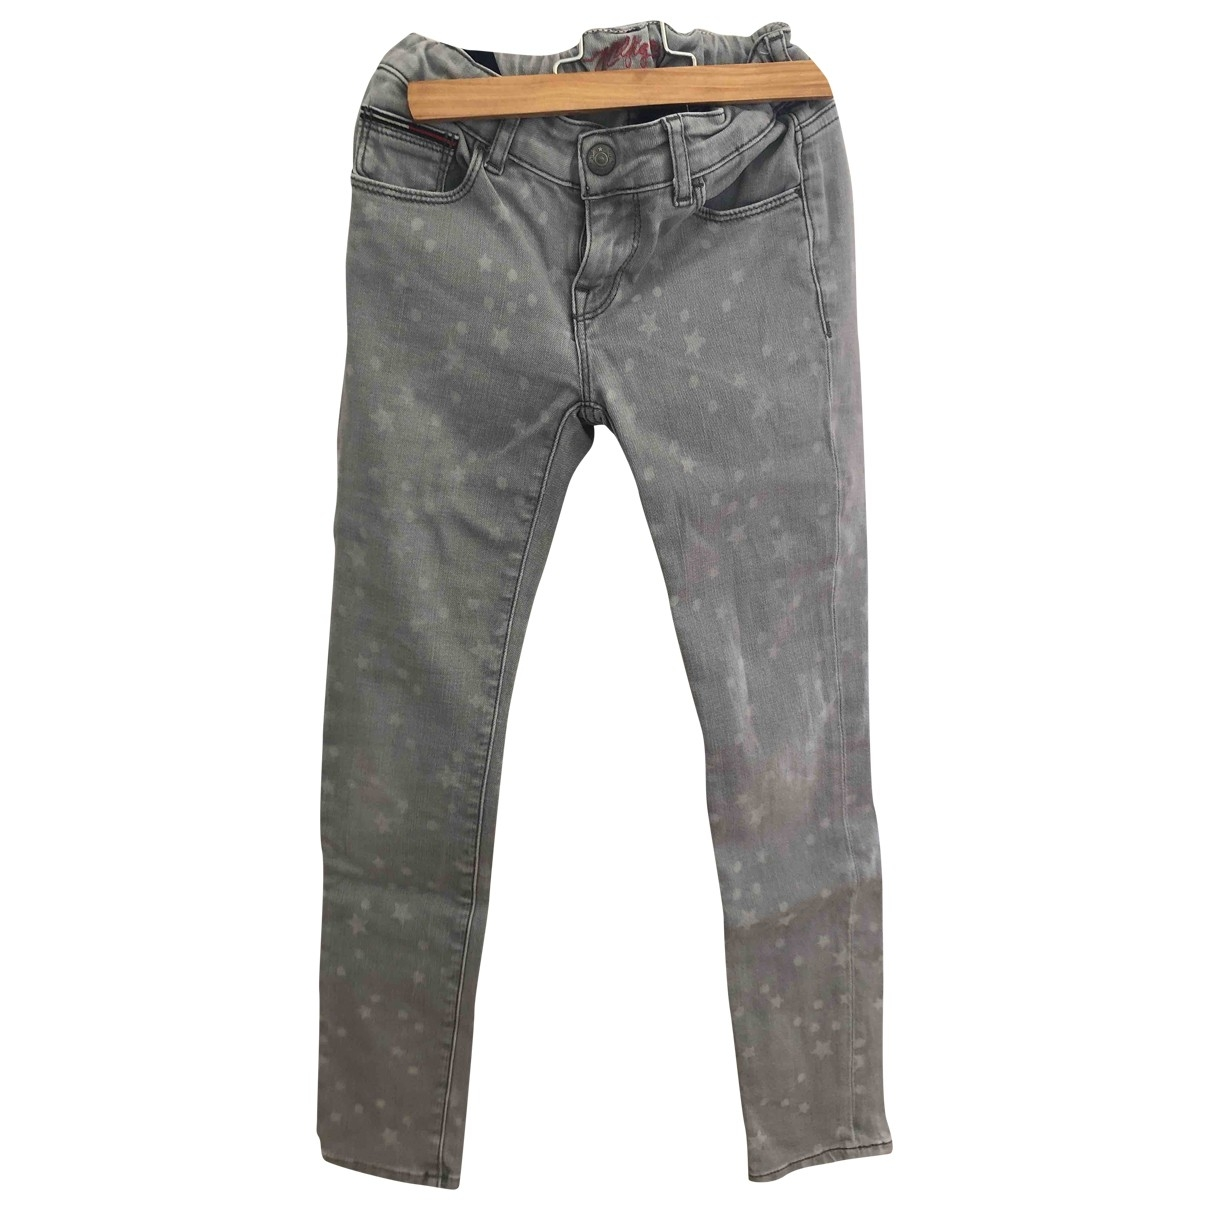 Tommy Hilfiger \N Grey Denim - Jeans Trousers for Kids 8 years - up to 128cm FR